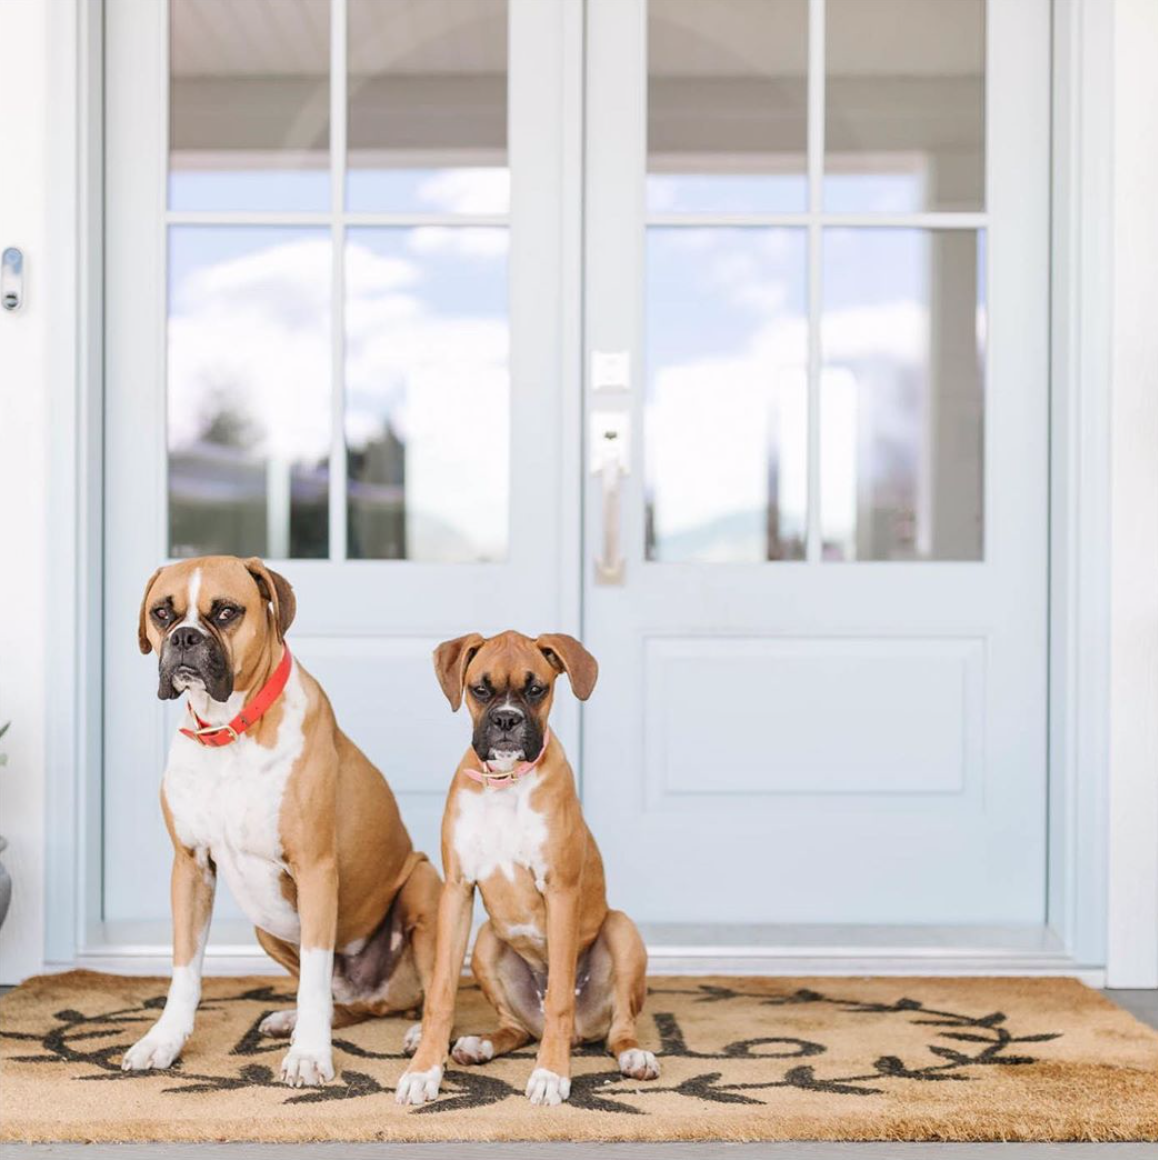 No guard dogs needed with an Emtek lock on your front door but Canadian designer and TV show host  @jillian.harris 's cute pooches make an awfully adorable greeting.